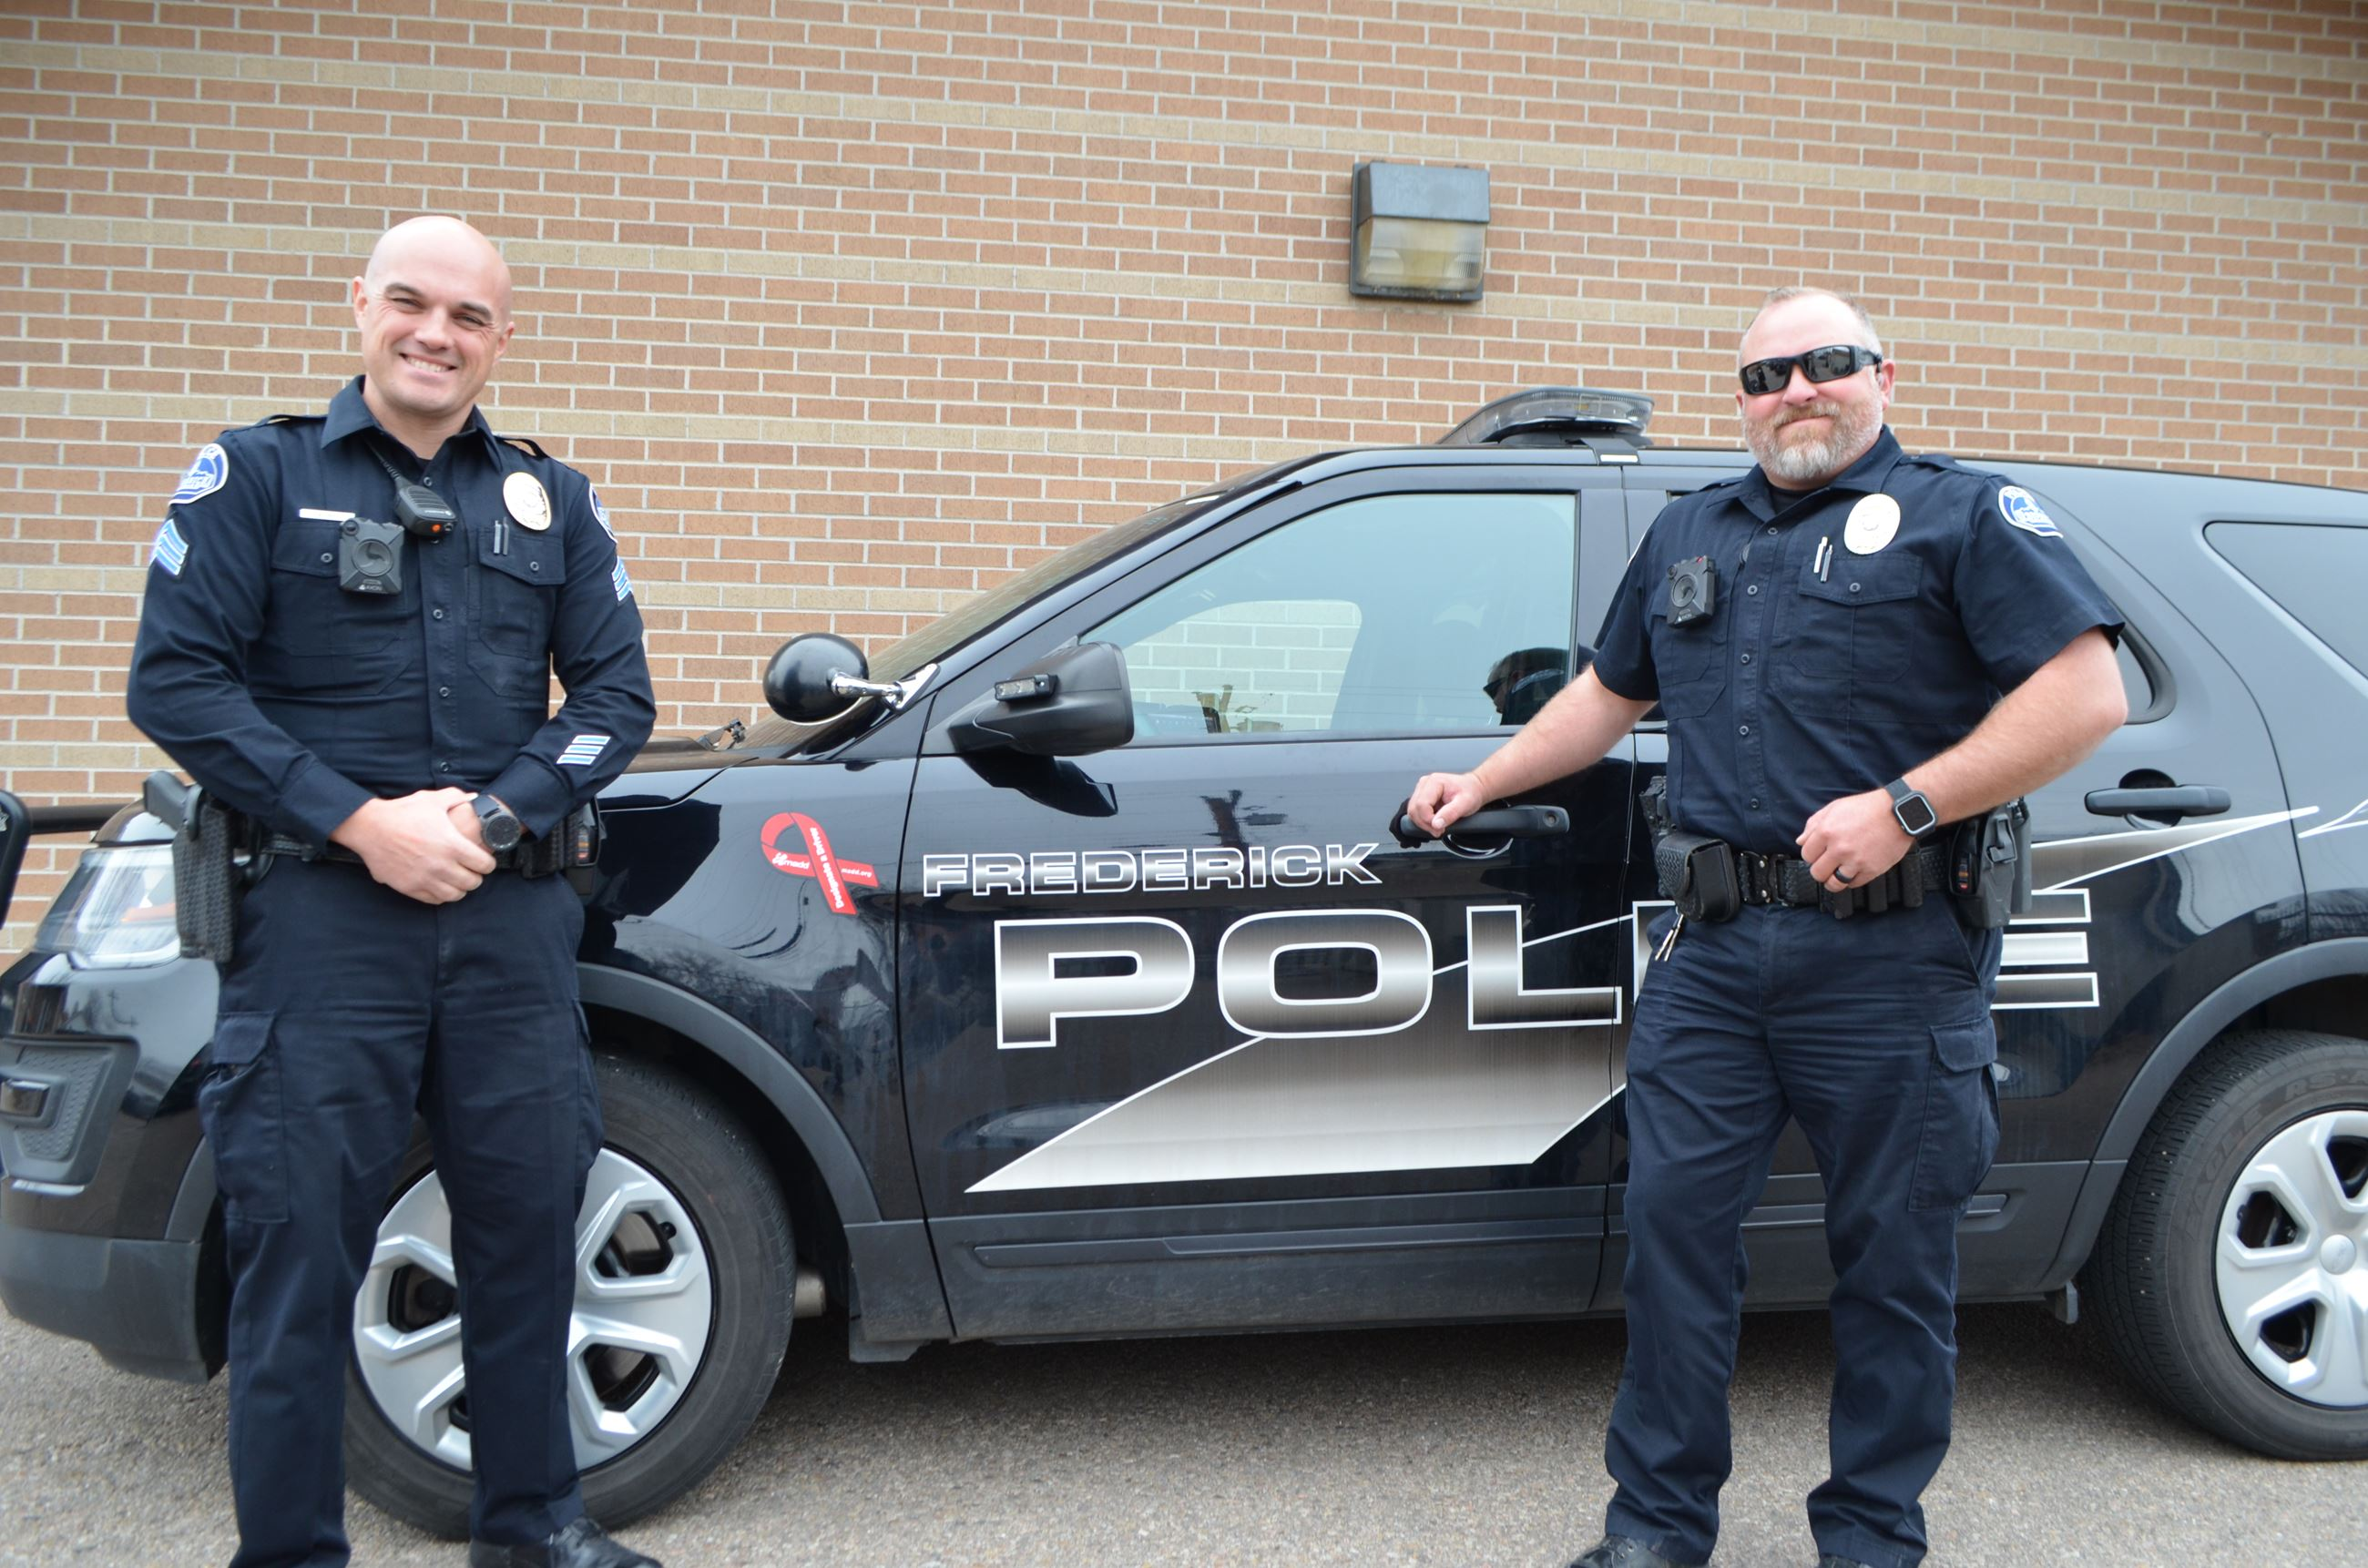 picture of two Frederick police officers standing by police vehicle